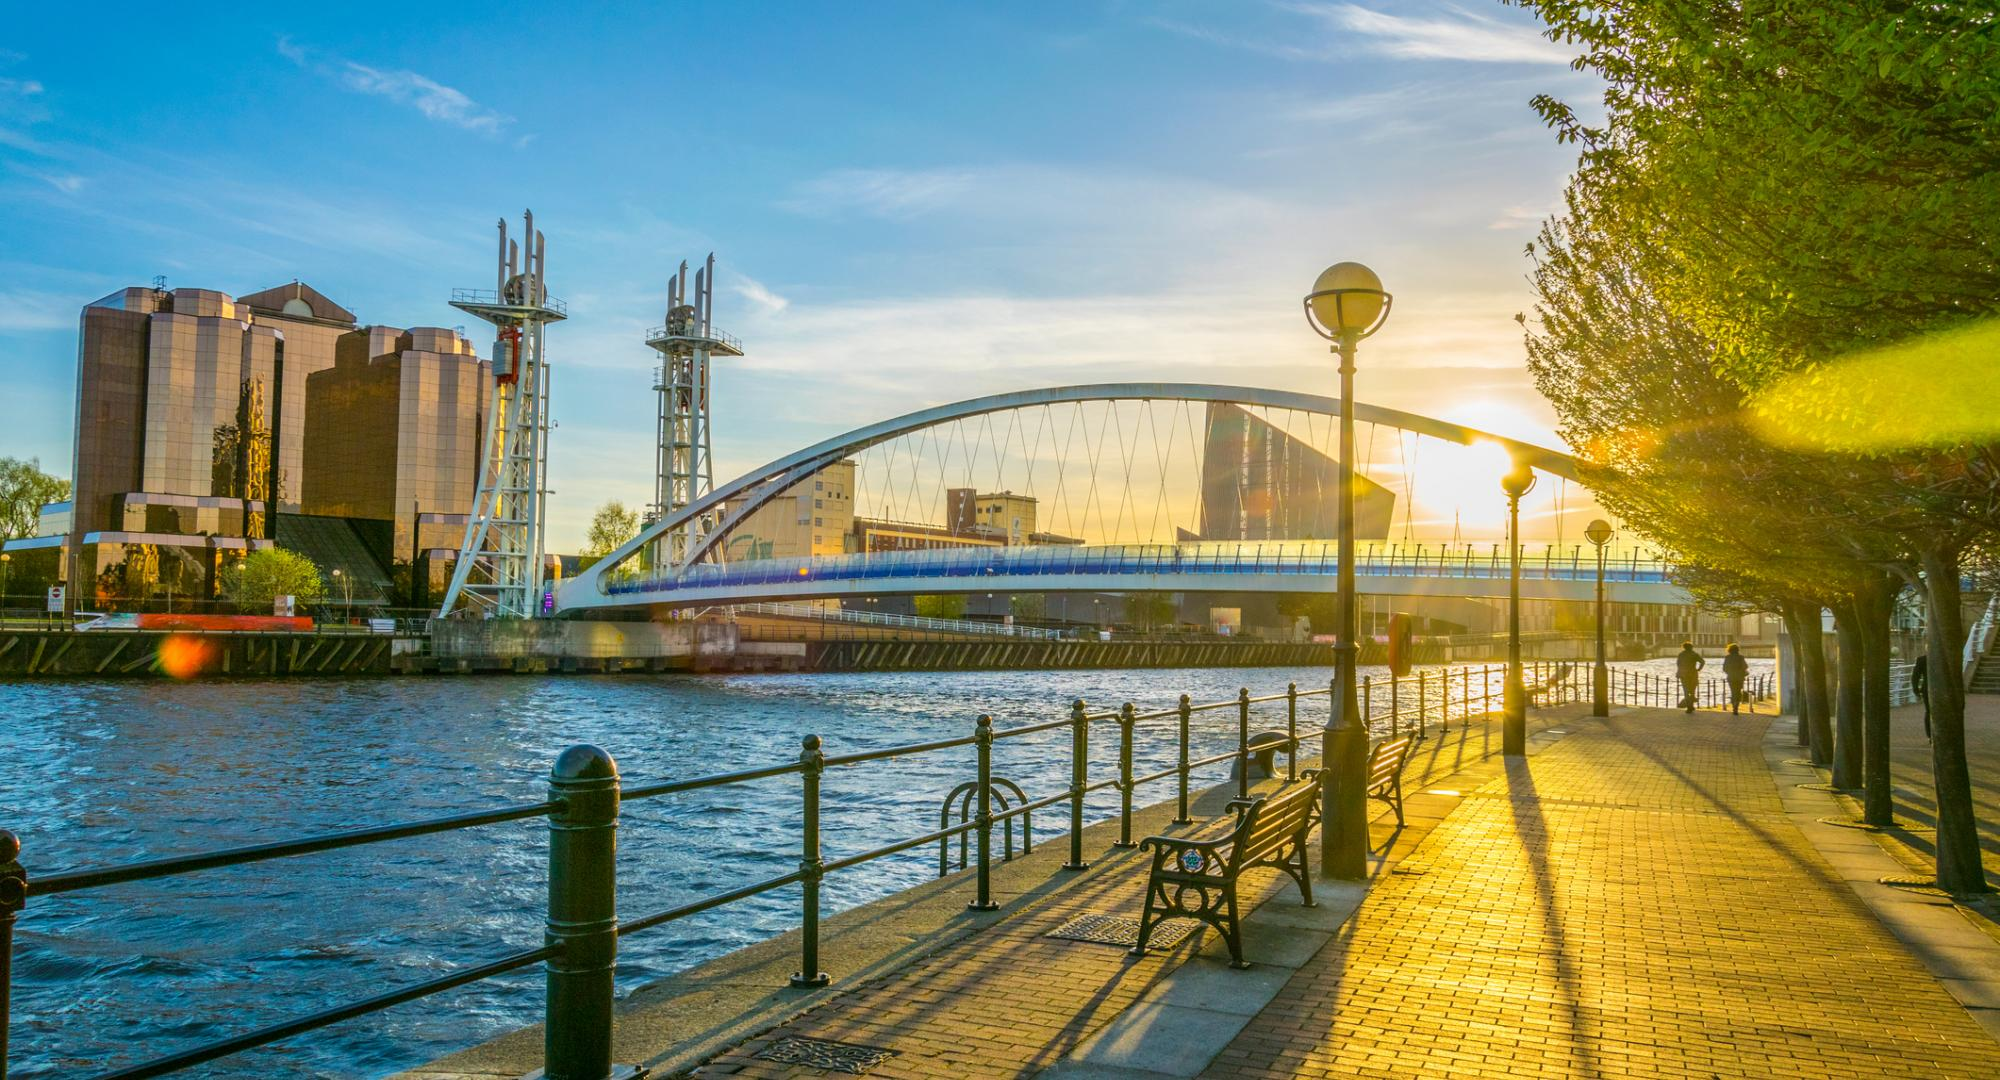 A picture of Salford Quays taken during golden hour.